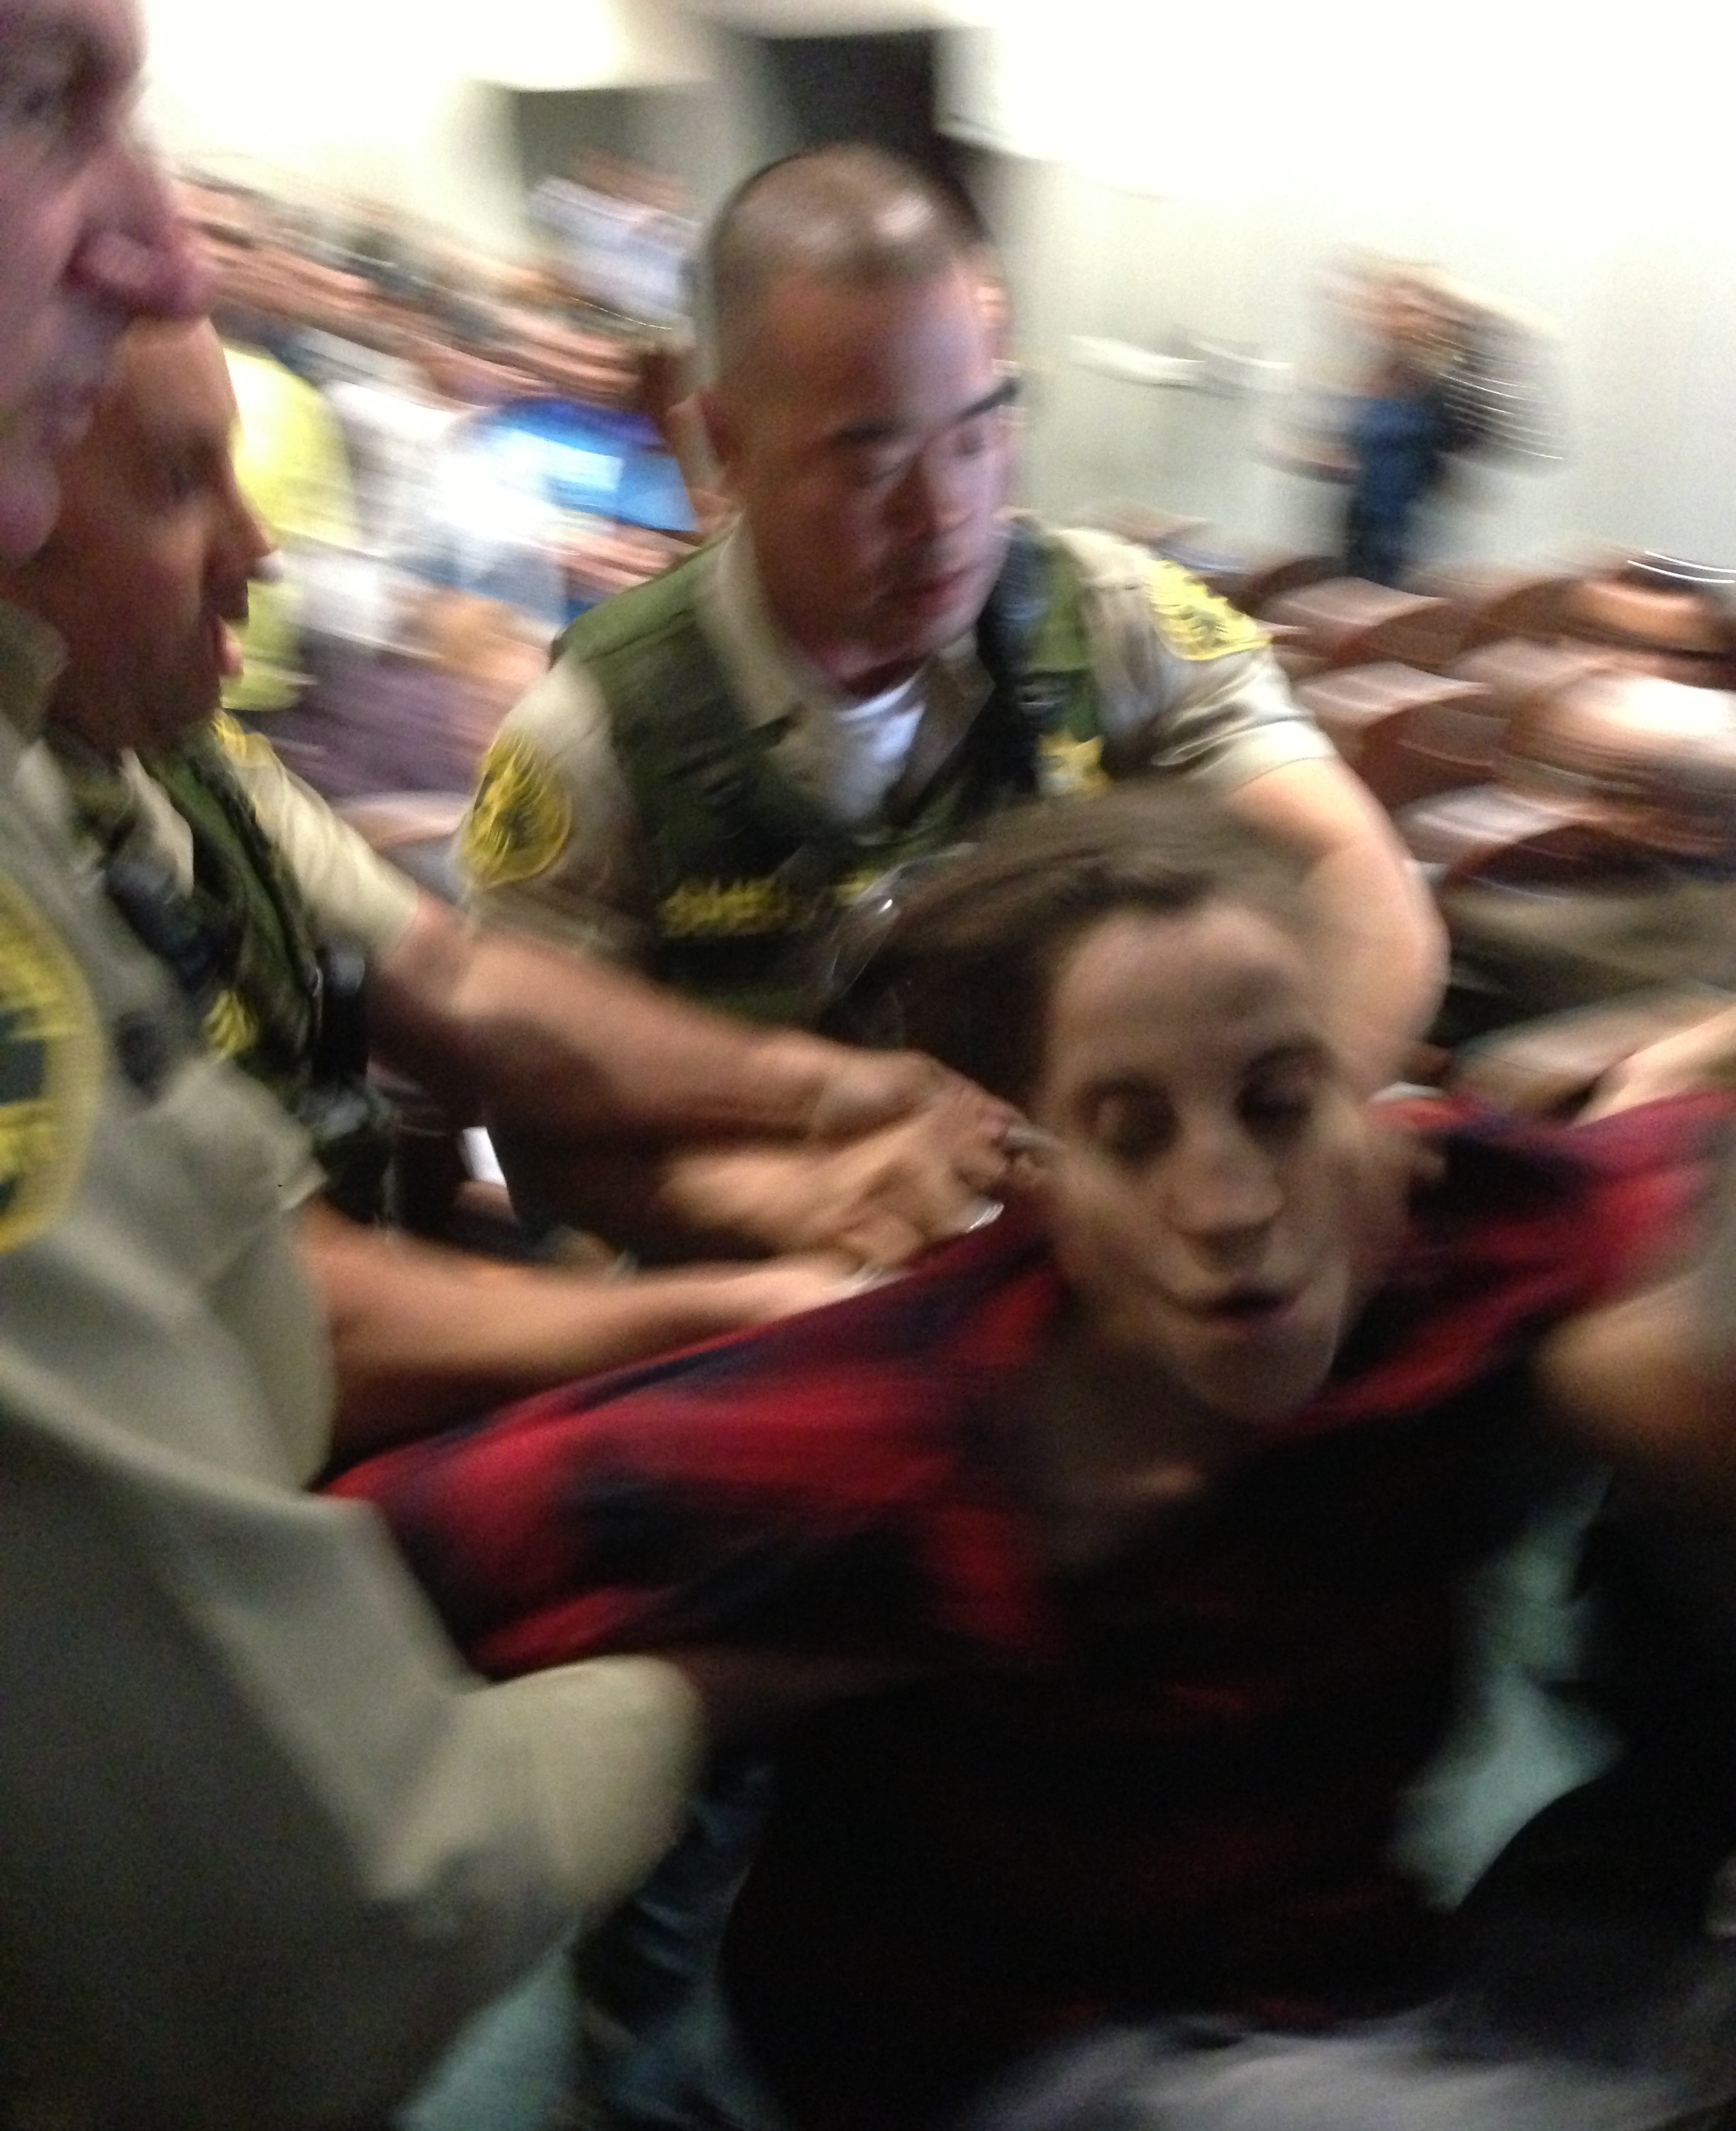 """Citing """"disruptive behavior"""" for prolonged public comment, uniformed officers removed two people from Metro's fare increase hearing.  photo: Joe Linton/Streetsblog LA"""